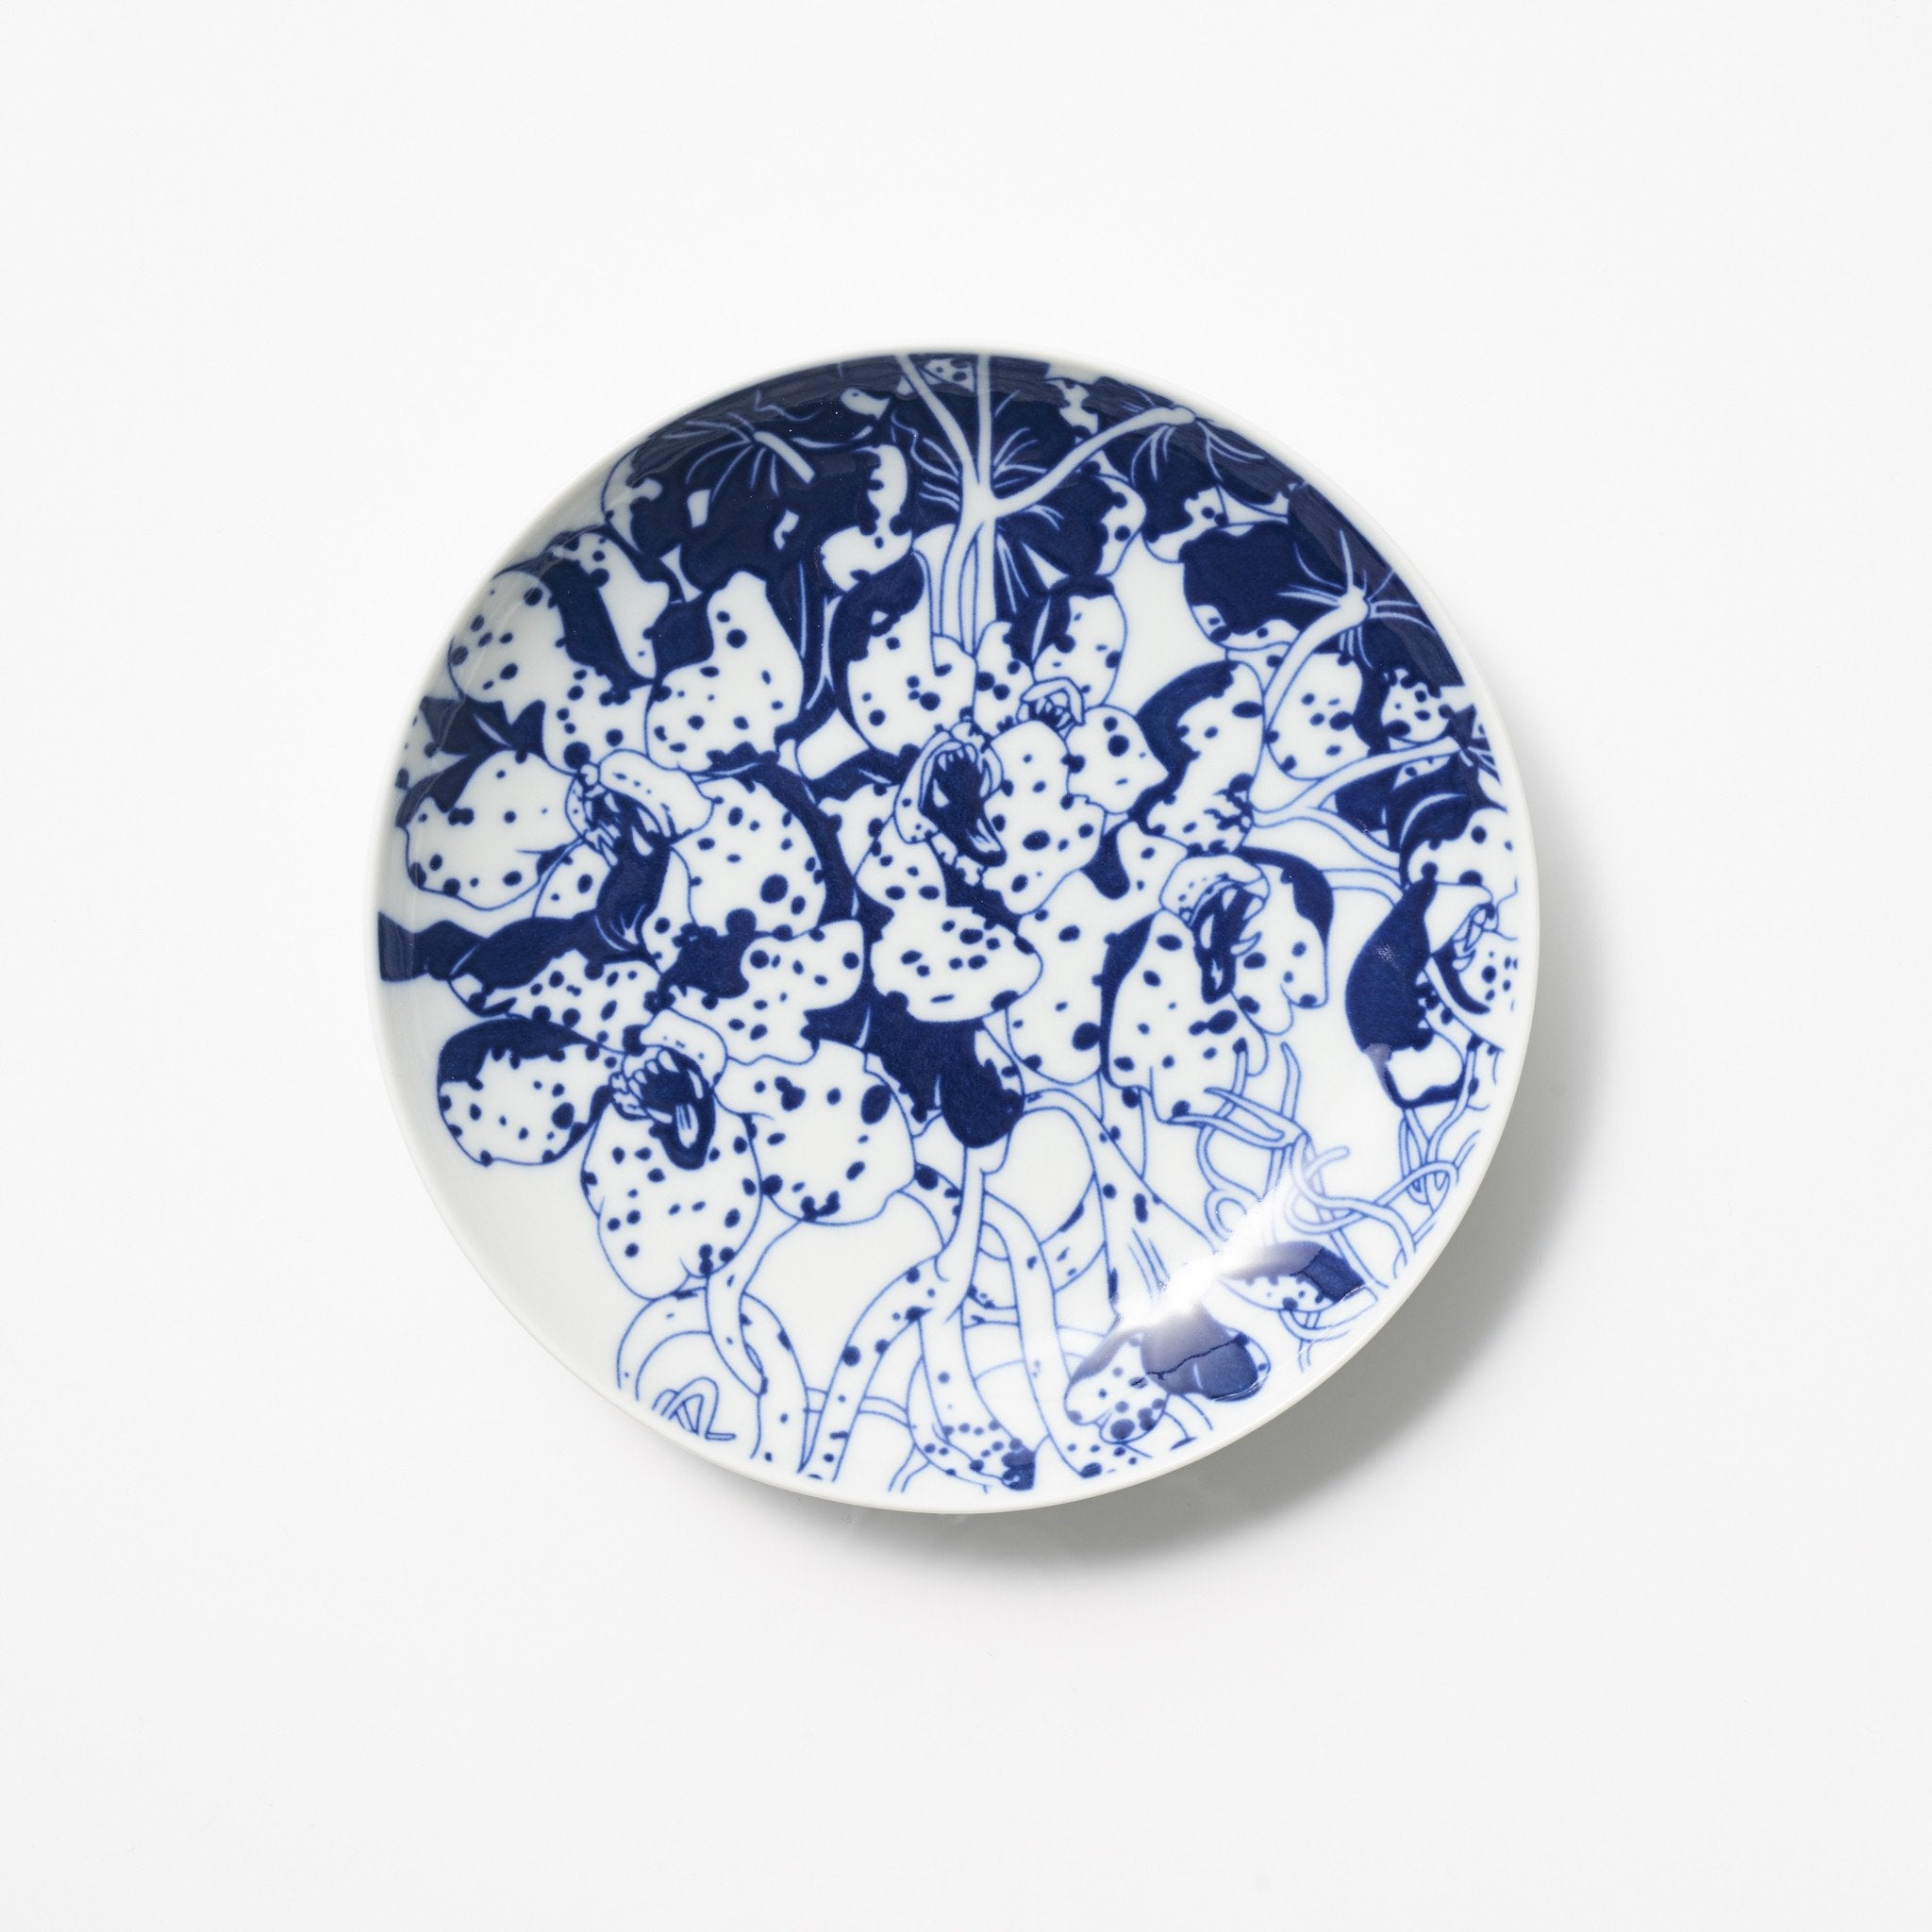 OIC - Tiger Orchid Porcelain Plate